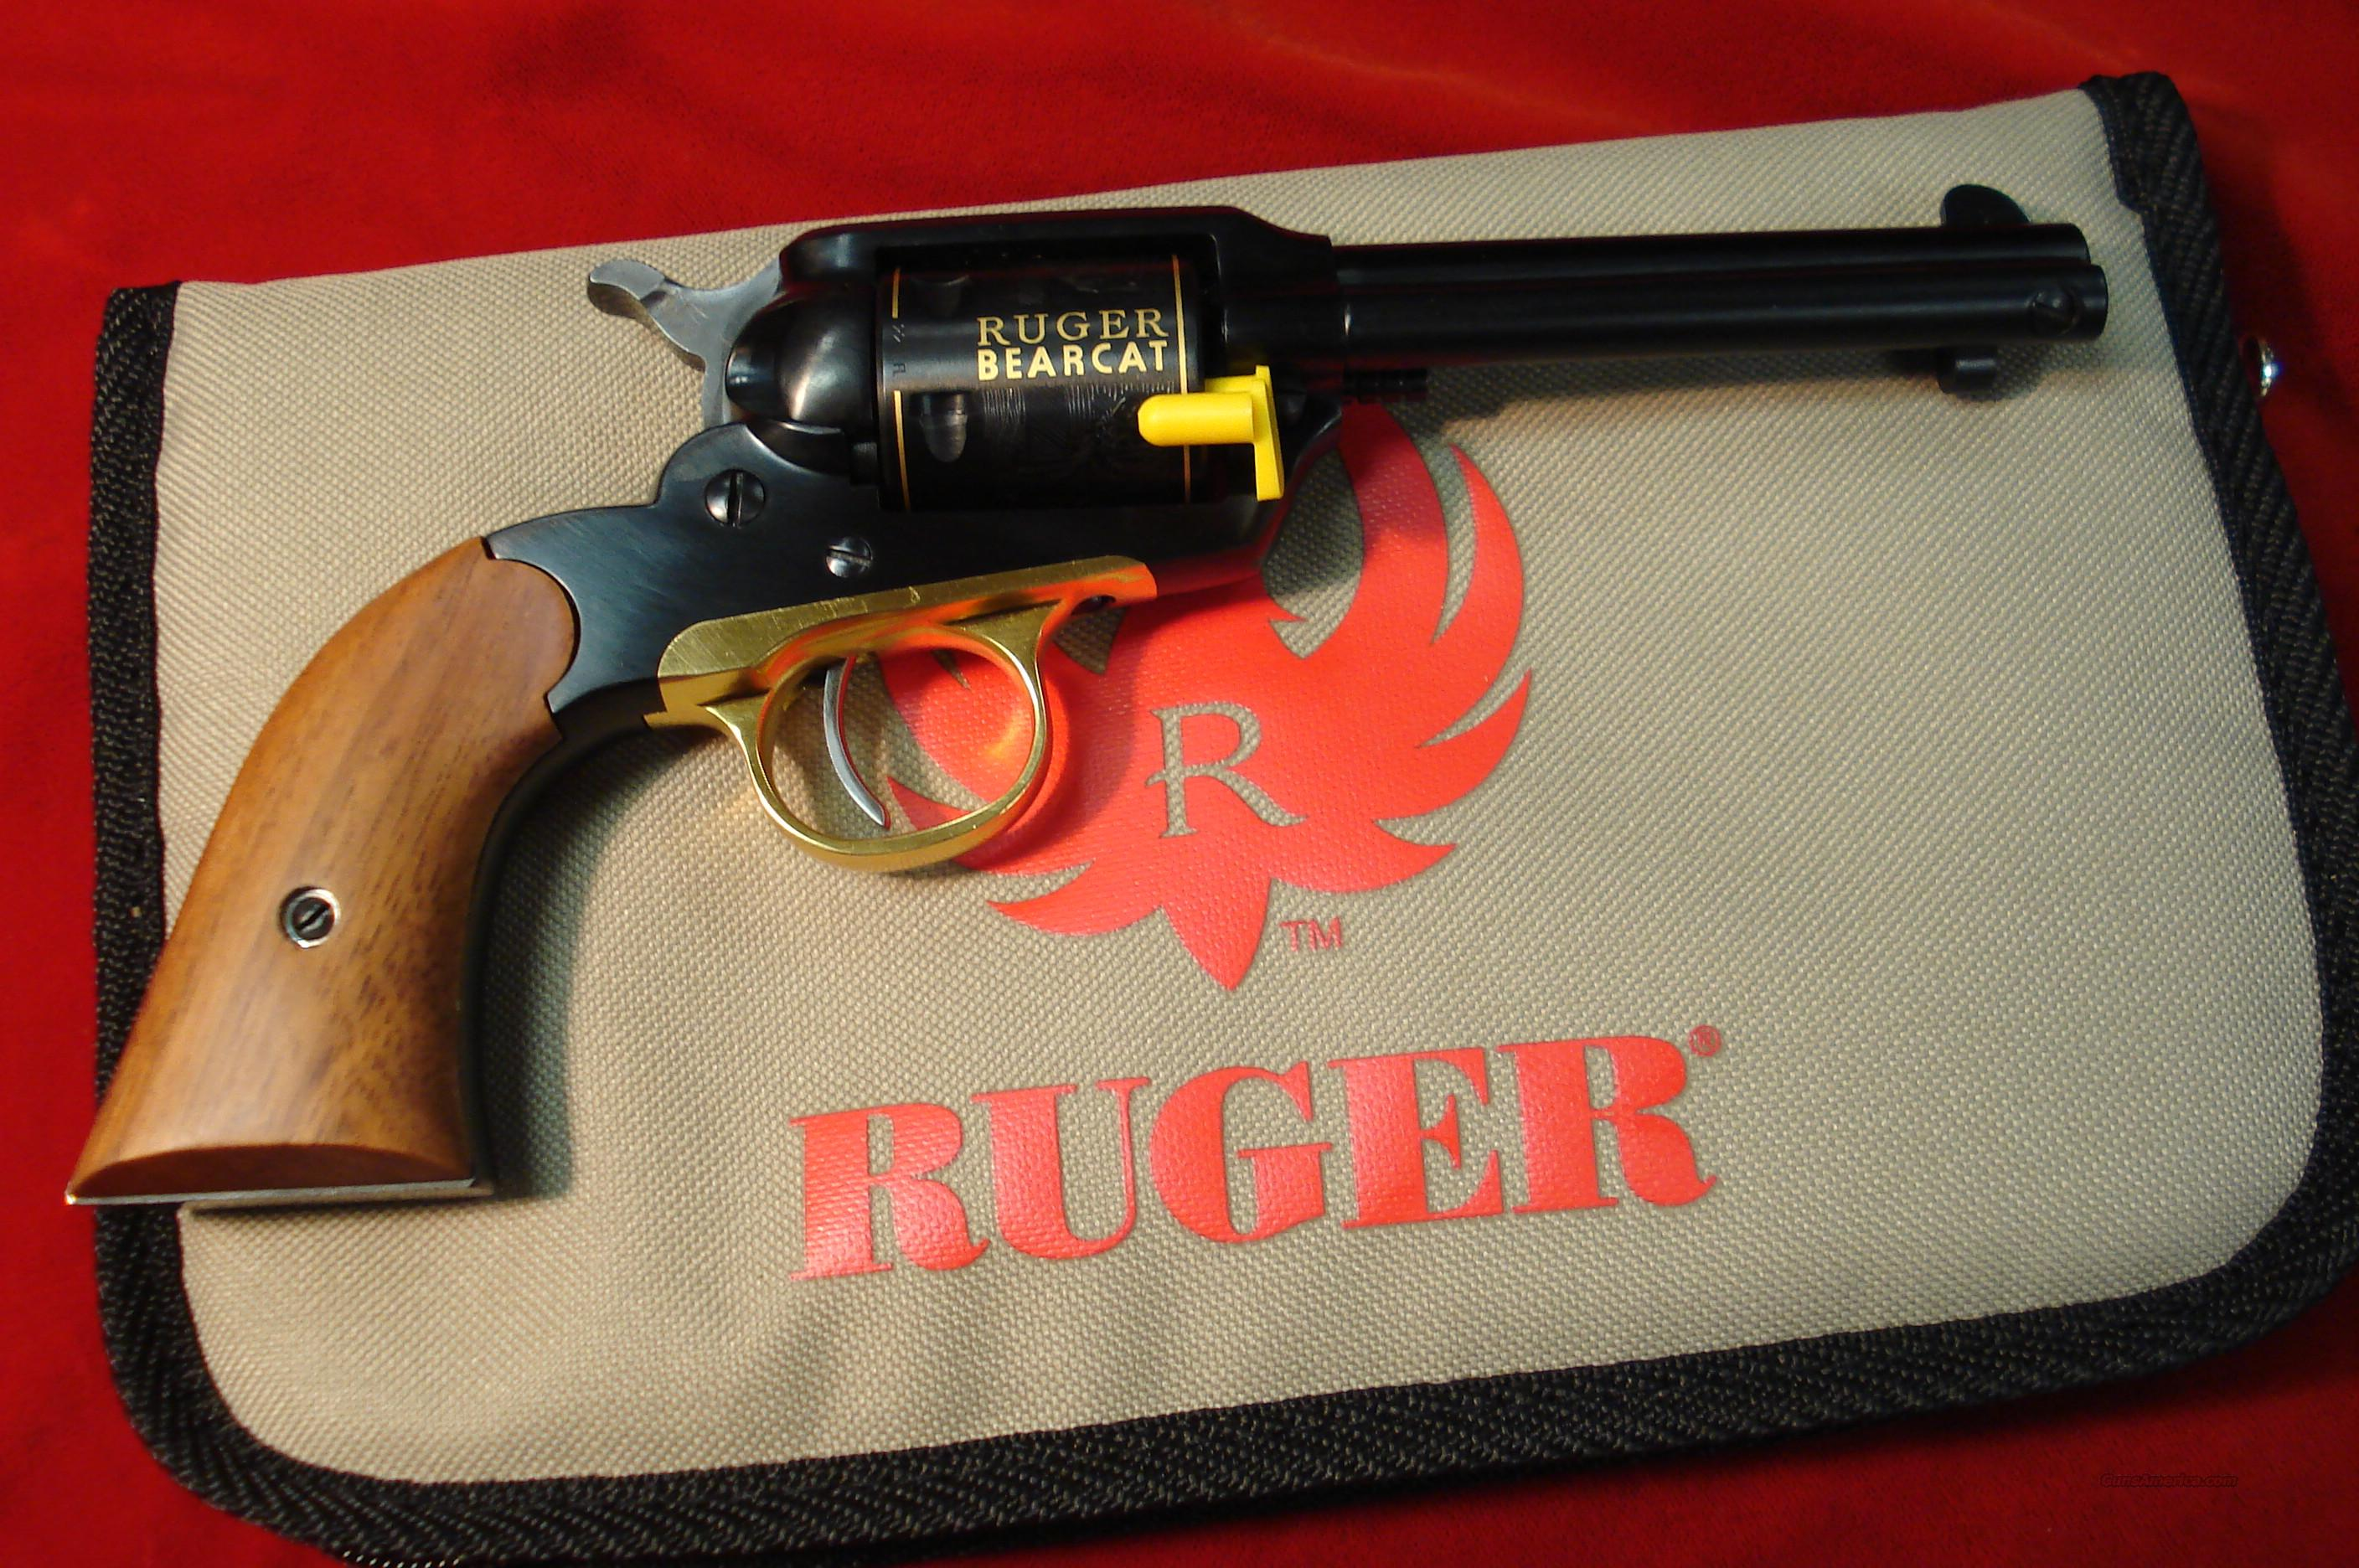 RUGER 50TH ANNIV. BEARCAT  22CAL. REVOLVER NEW  Guns > Pistols > Ruger Single Action Revolvers > Single Six Type